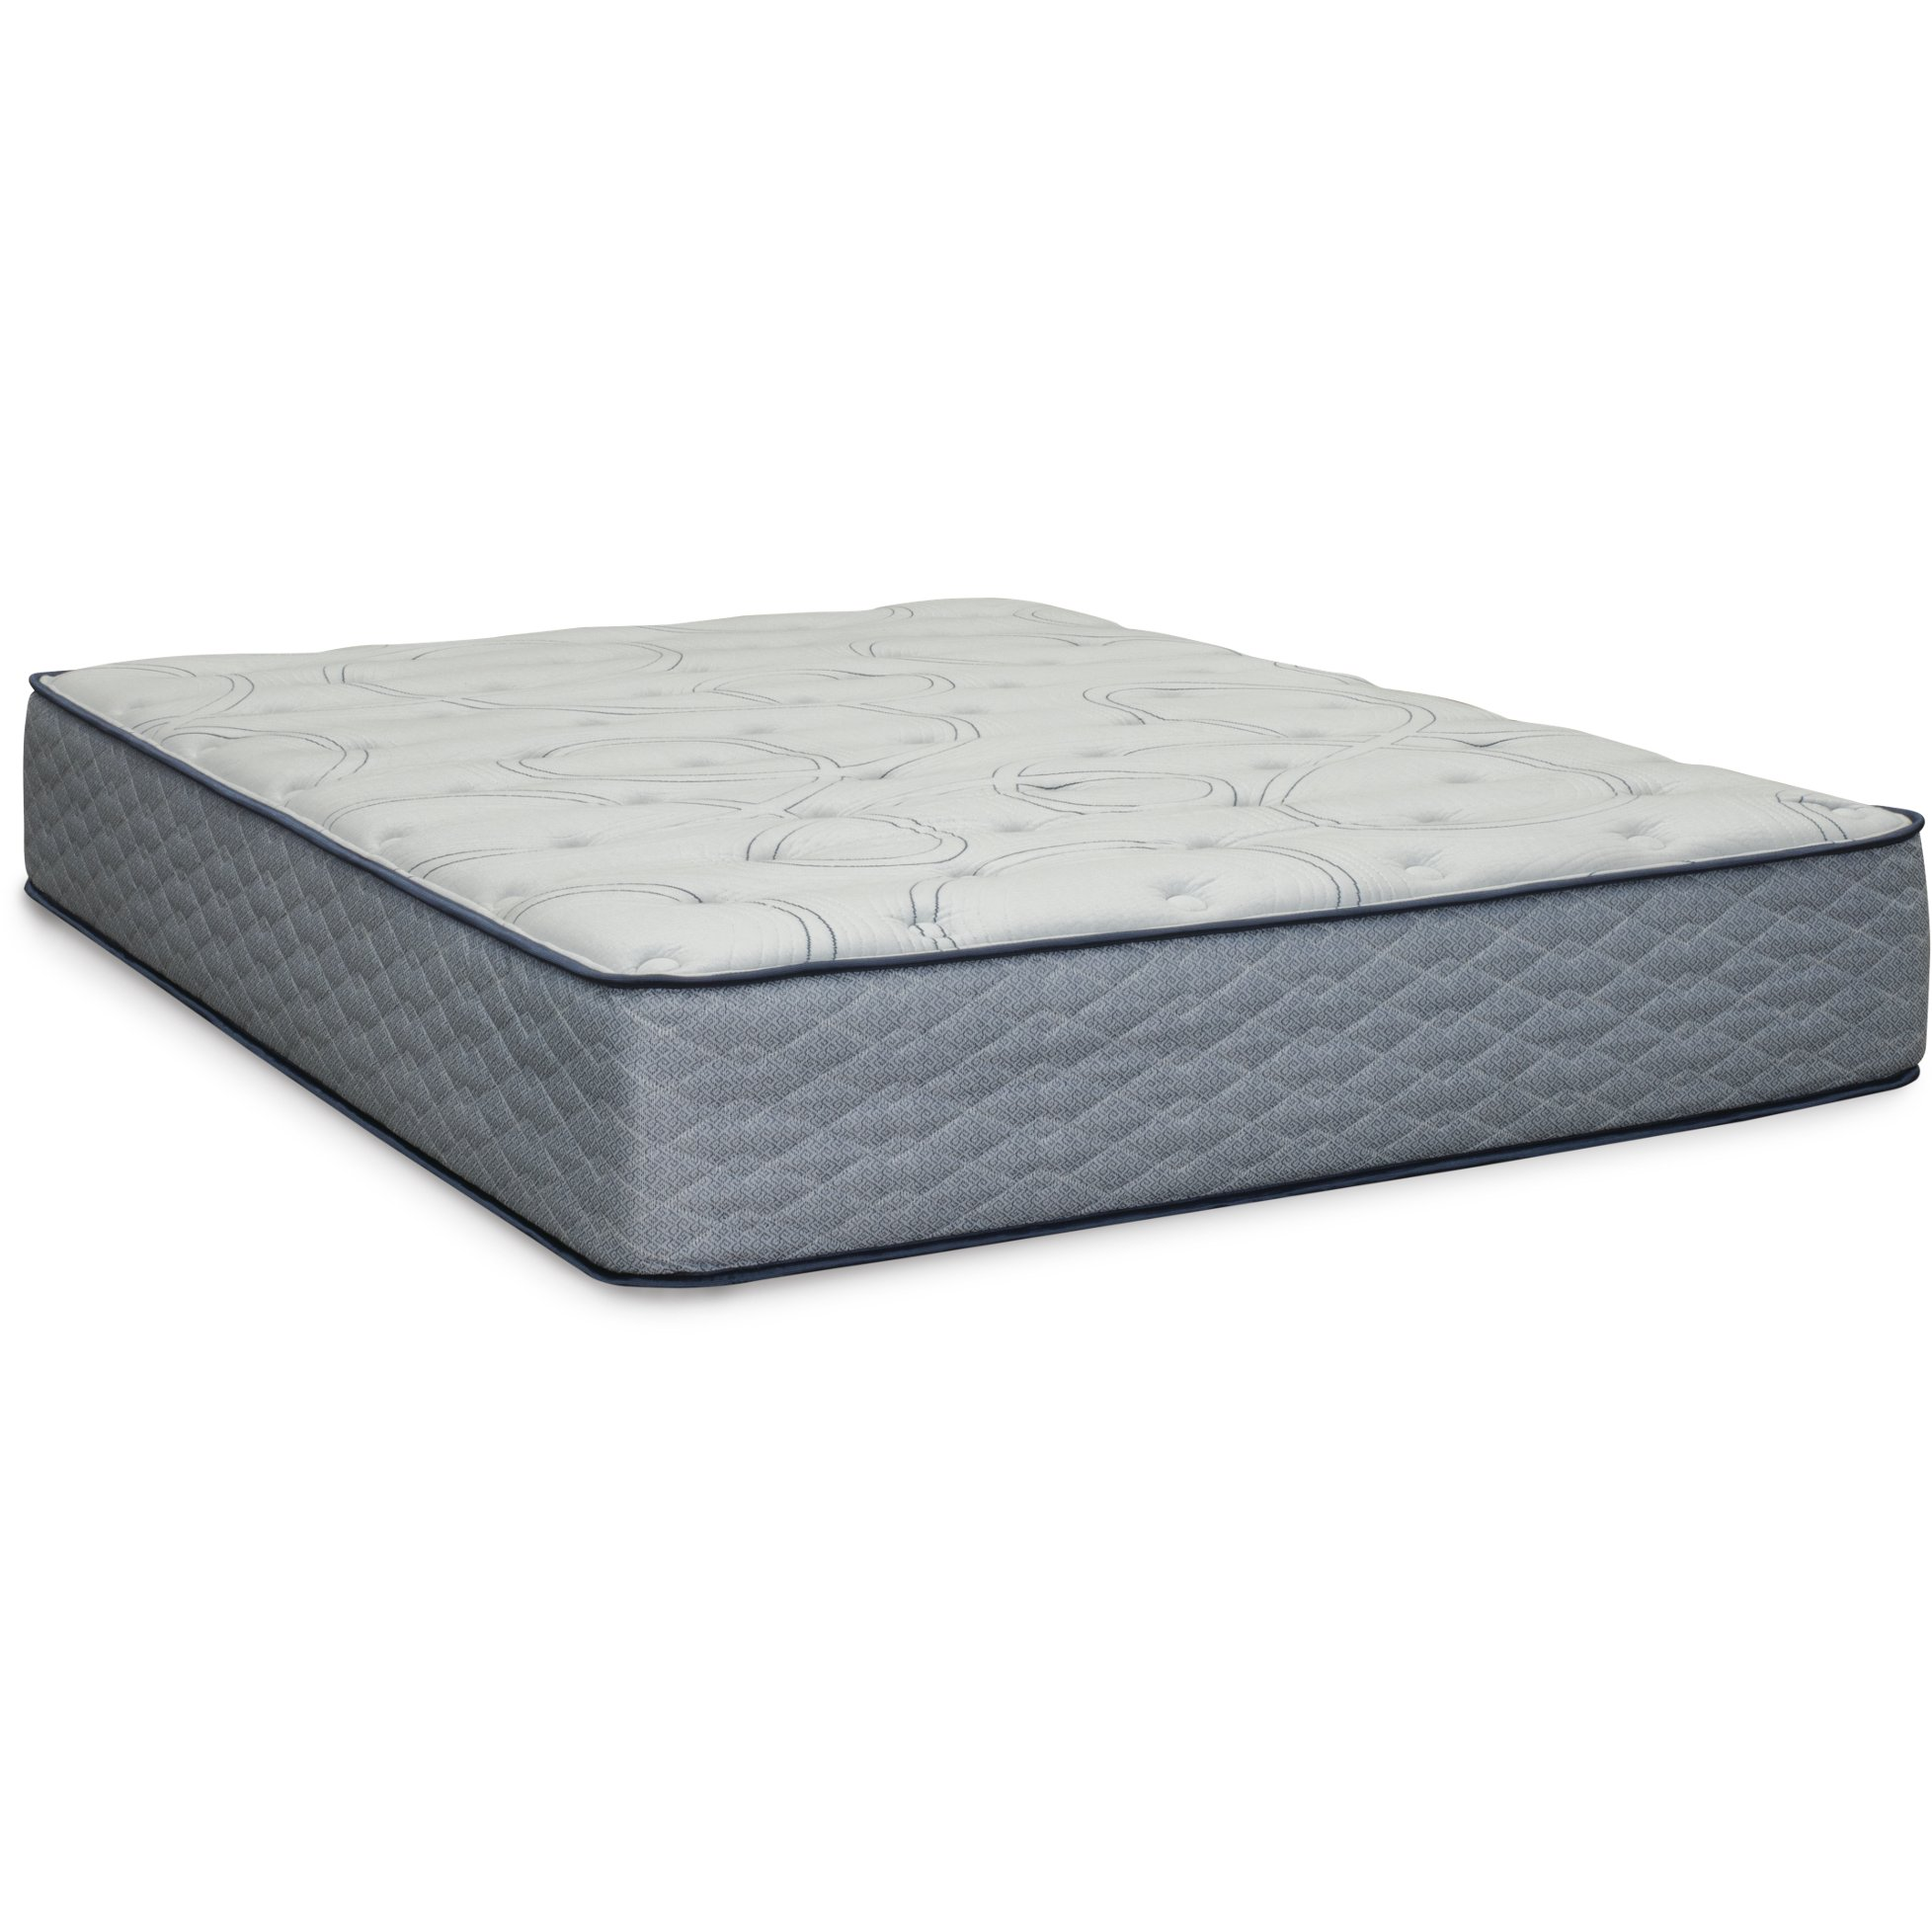 Sunset Lasalle Plush California King Mattress California King Mattress Twin Xl Mattress King Size Mattress